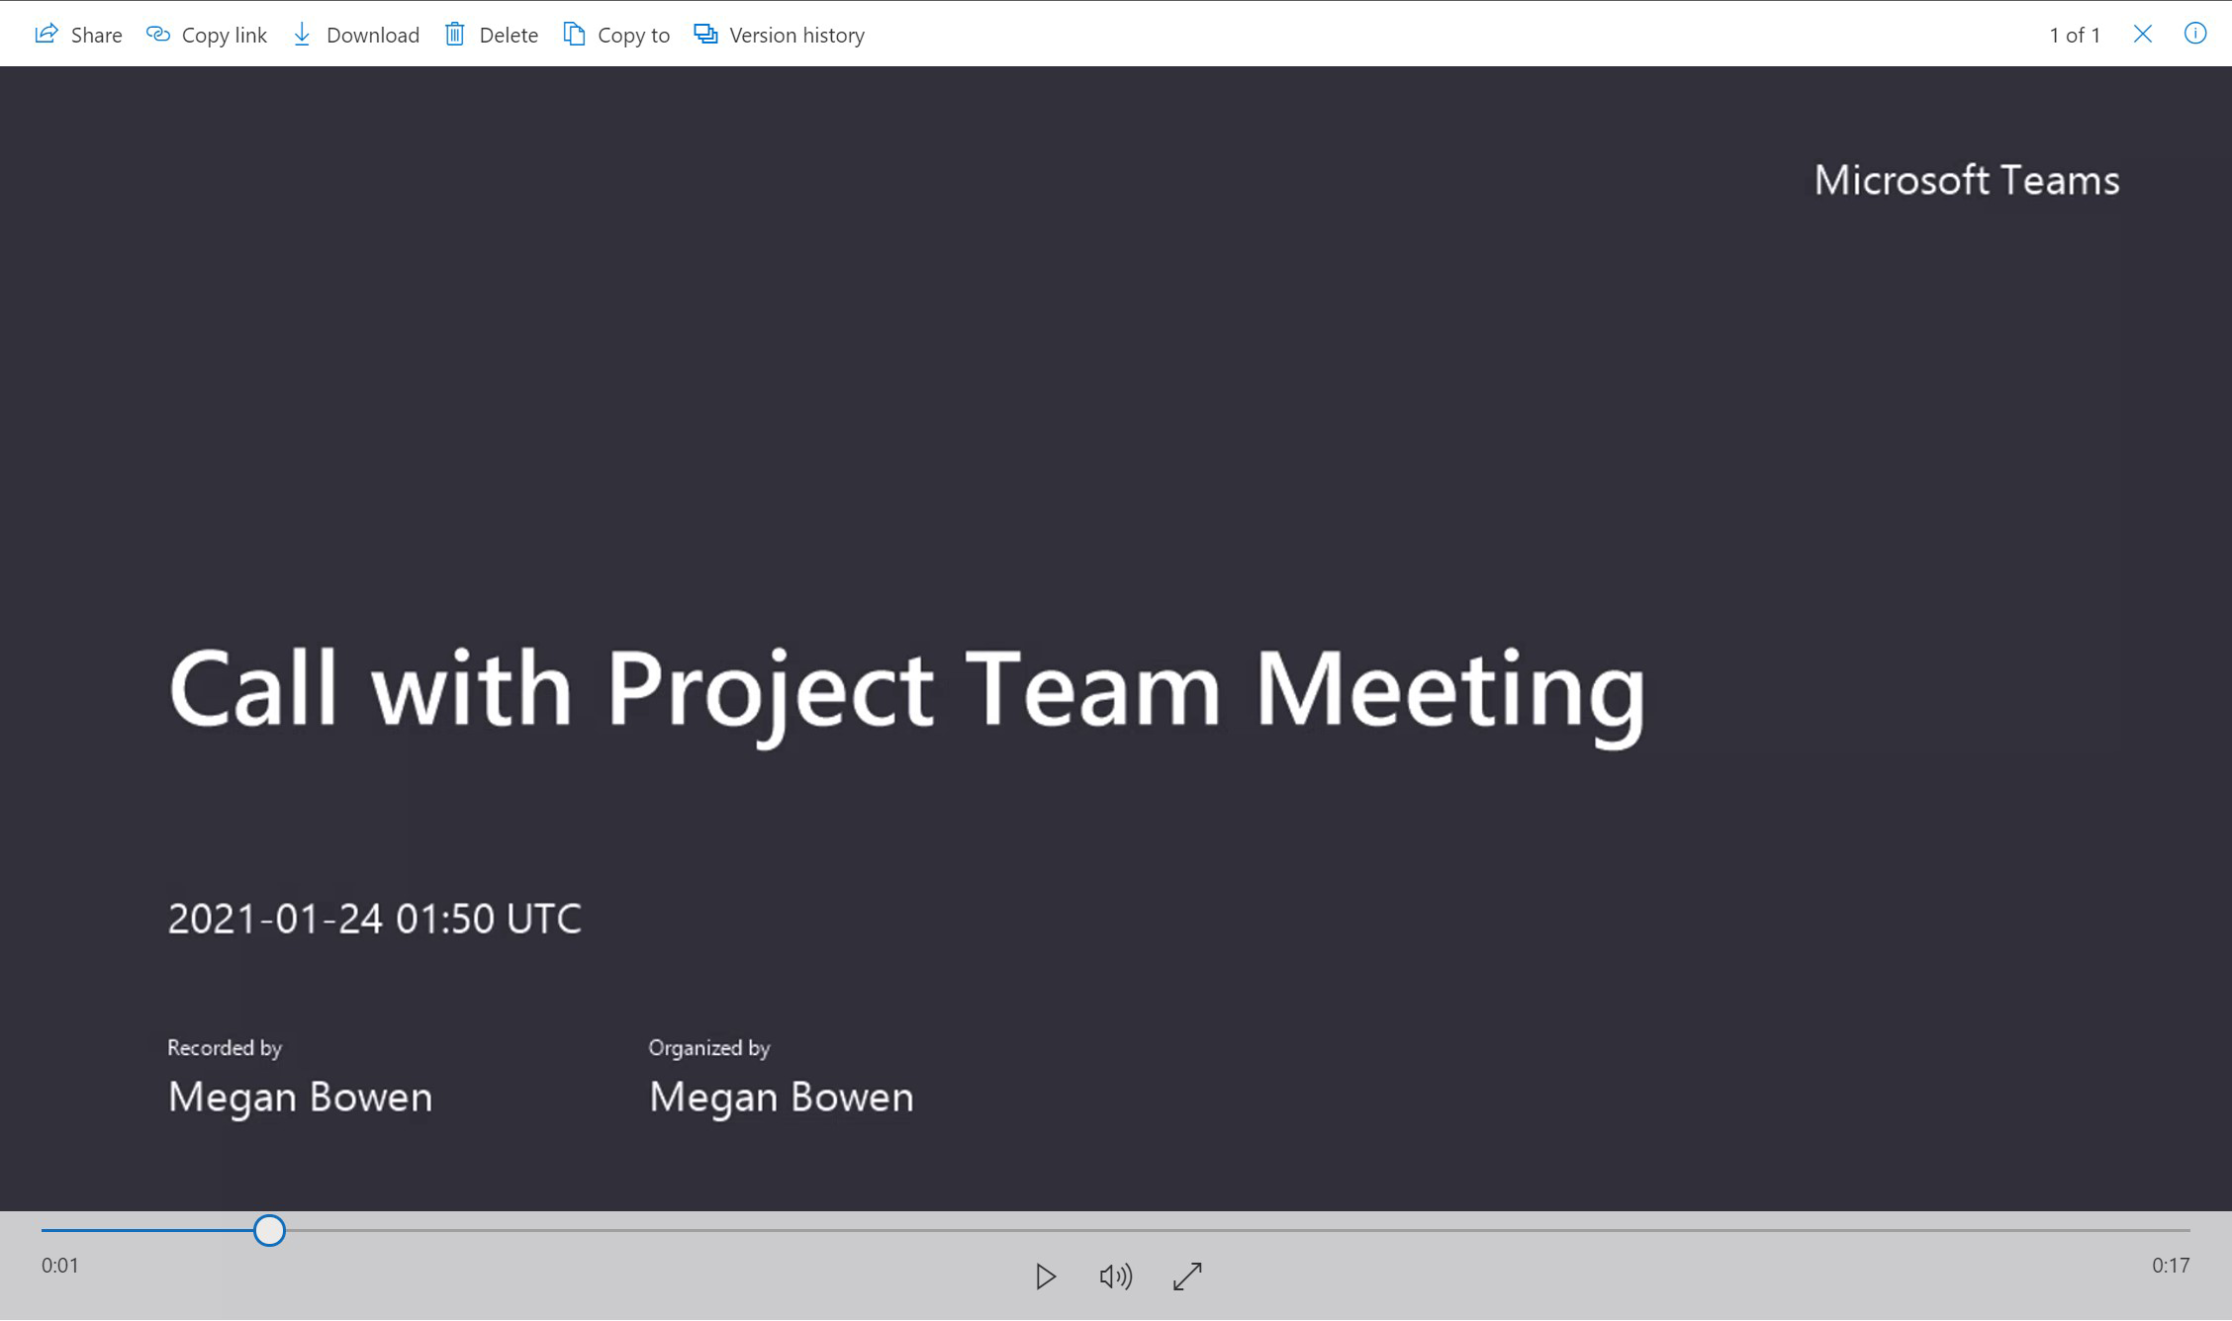 Call with Project Team Meeting